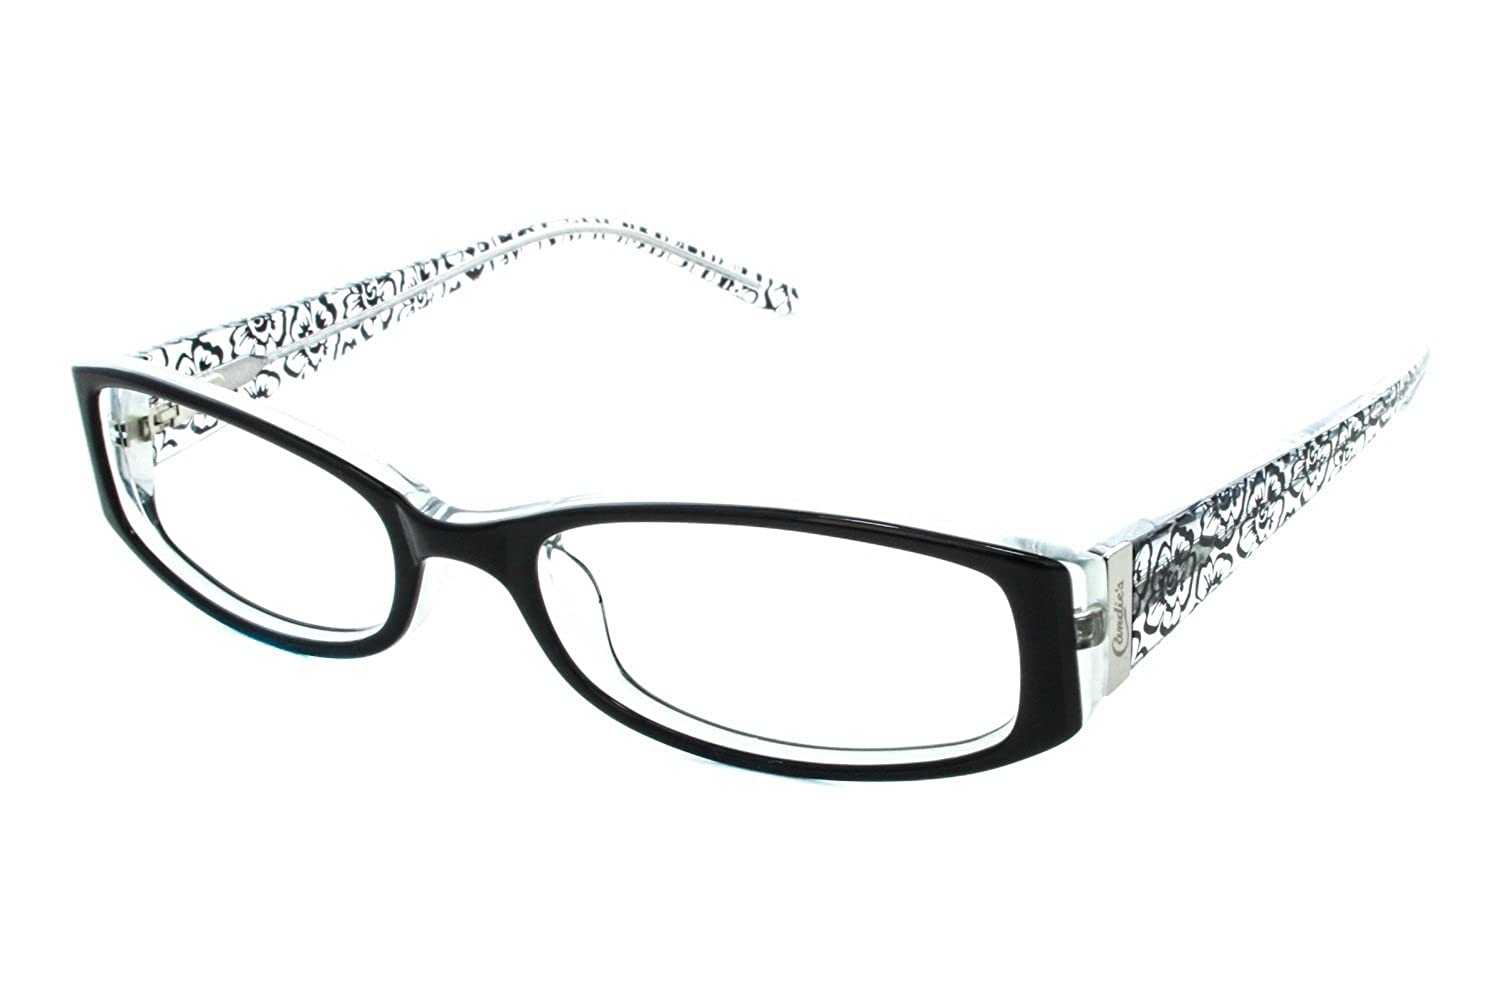 Amazon.com: Candies CROSANA Eyeglasses: Clothing